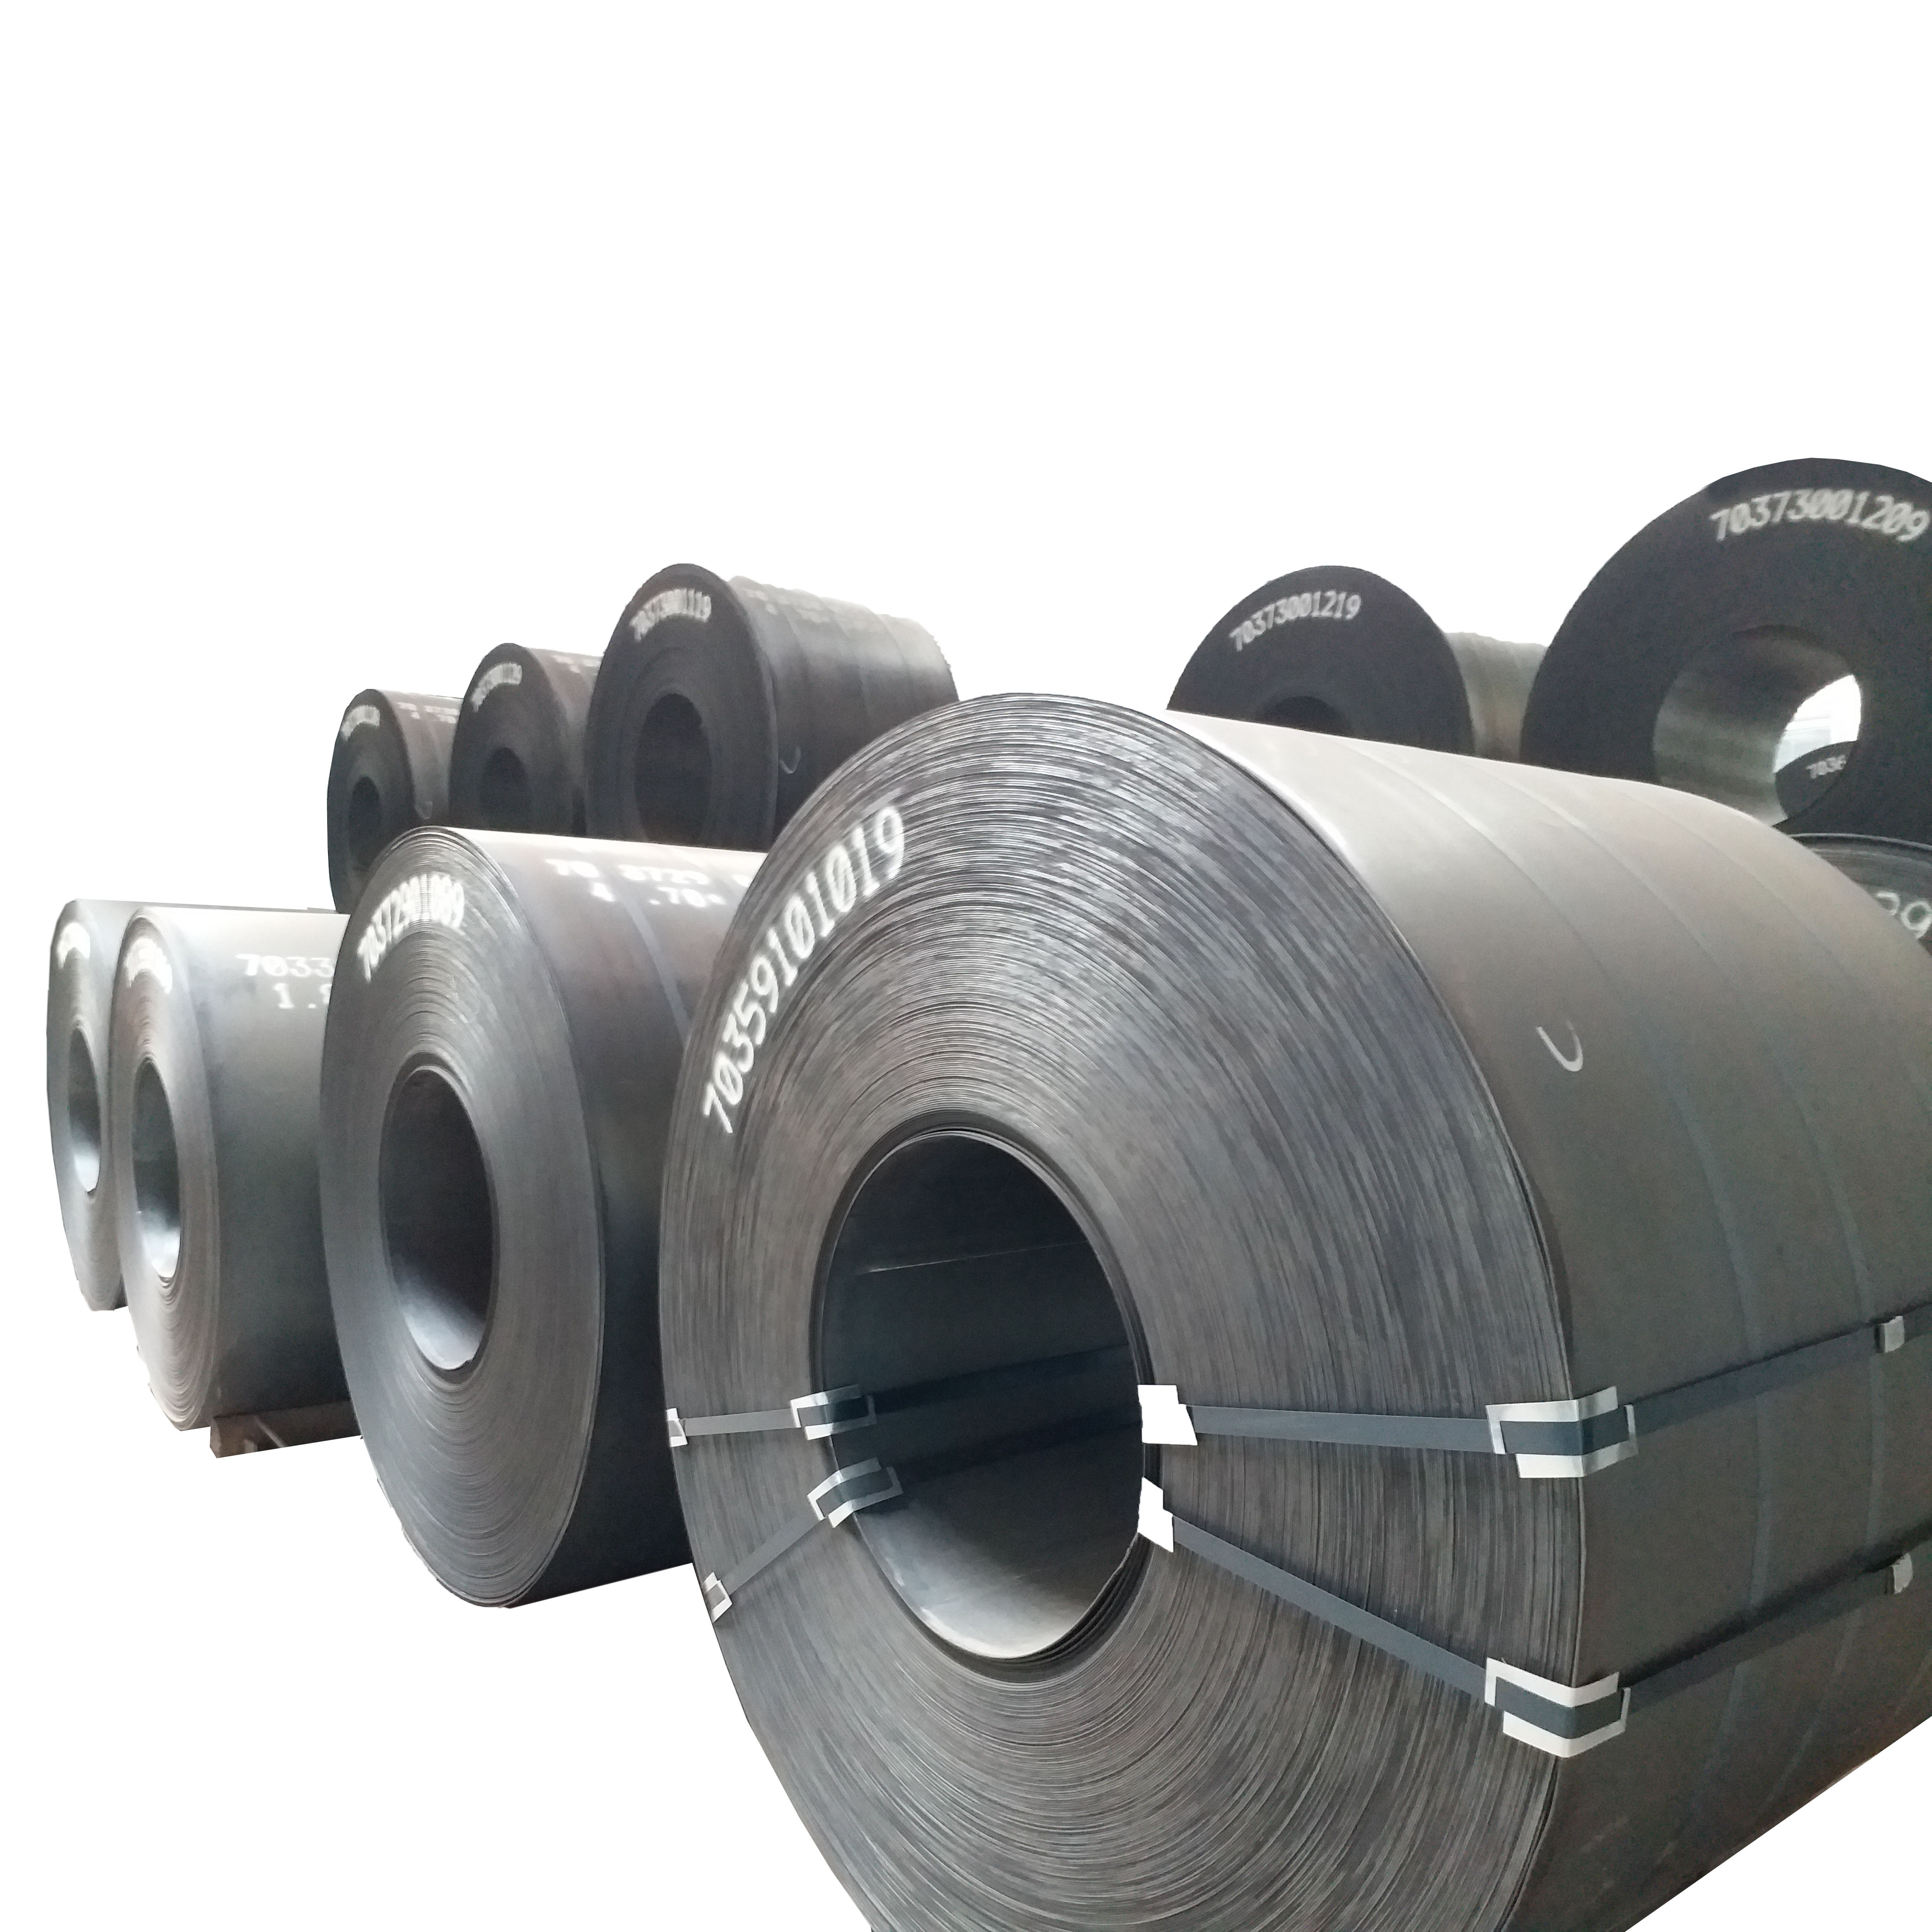 wrought steel roller steel coil stock holder supplier providing A36 8mm Hot Rolled Coil Steel separating into small hr coil